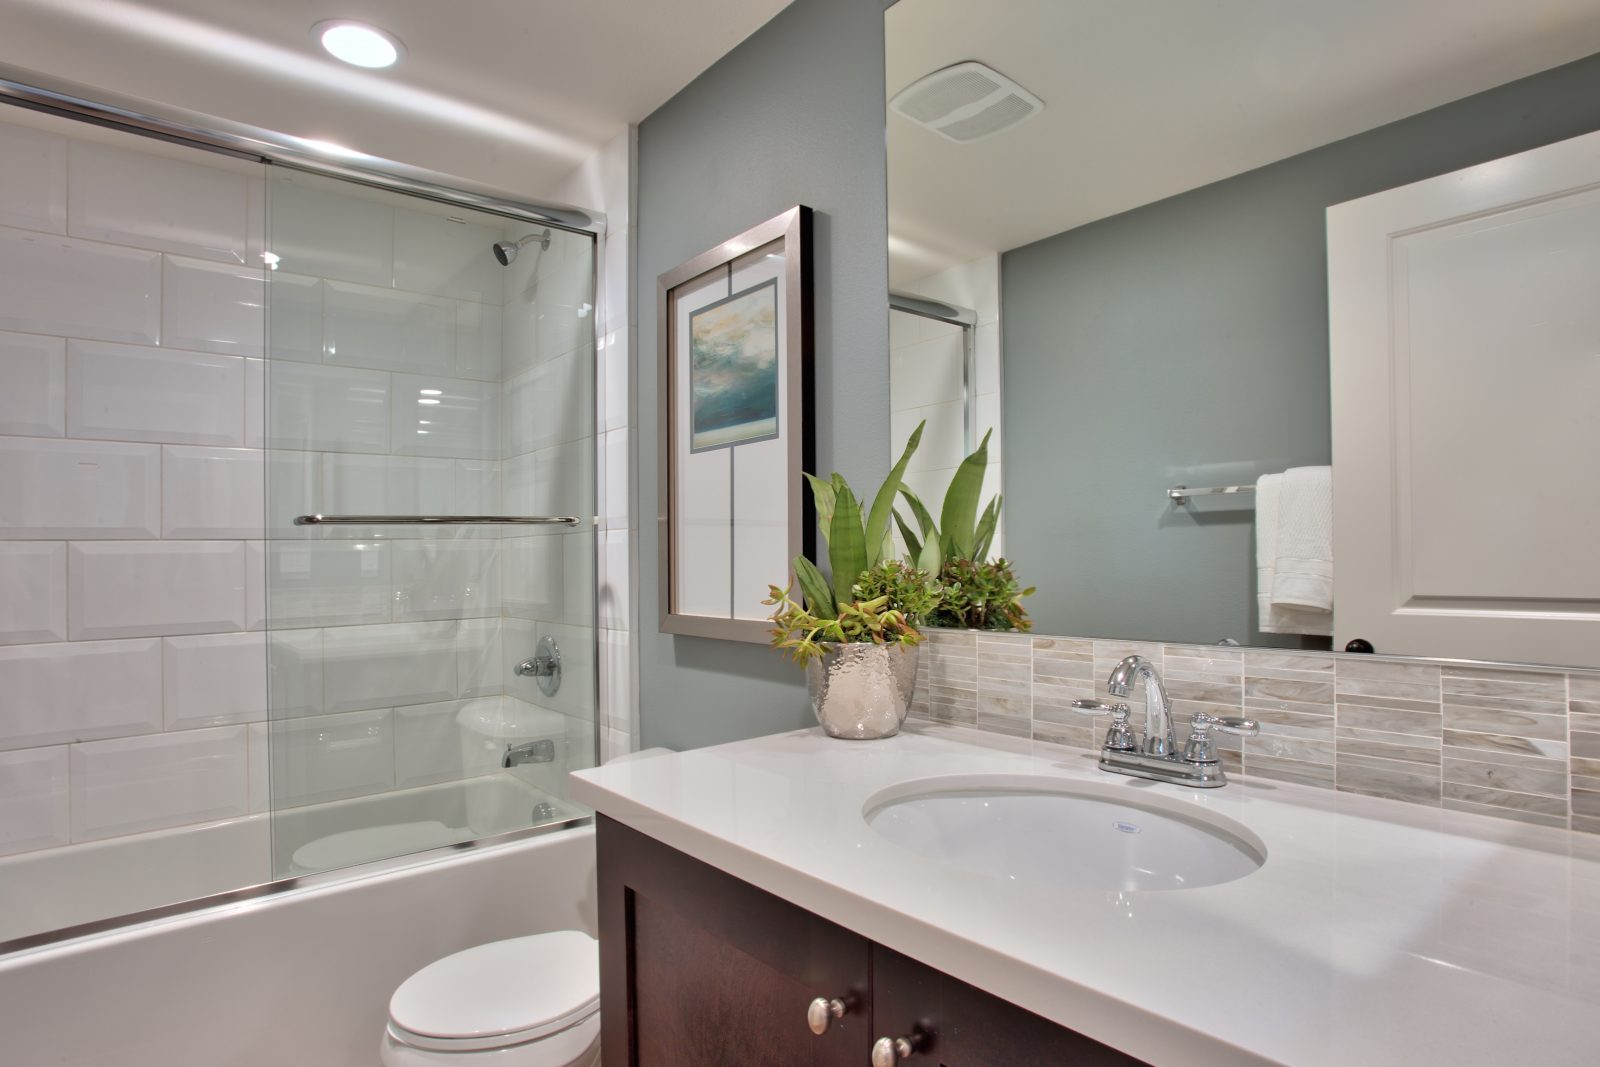 Bathroom at Spencers Crossing in Riverside, CA | Brookfield Residential